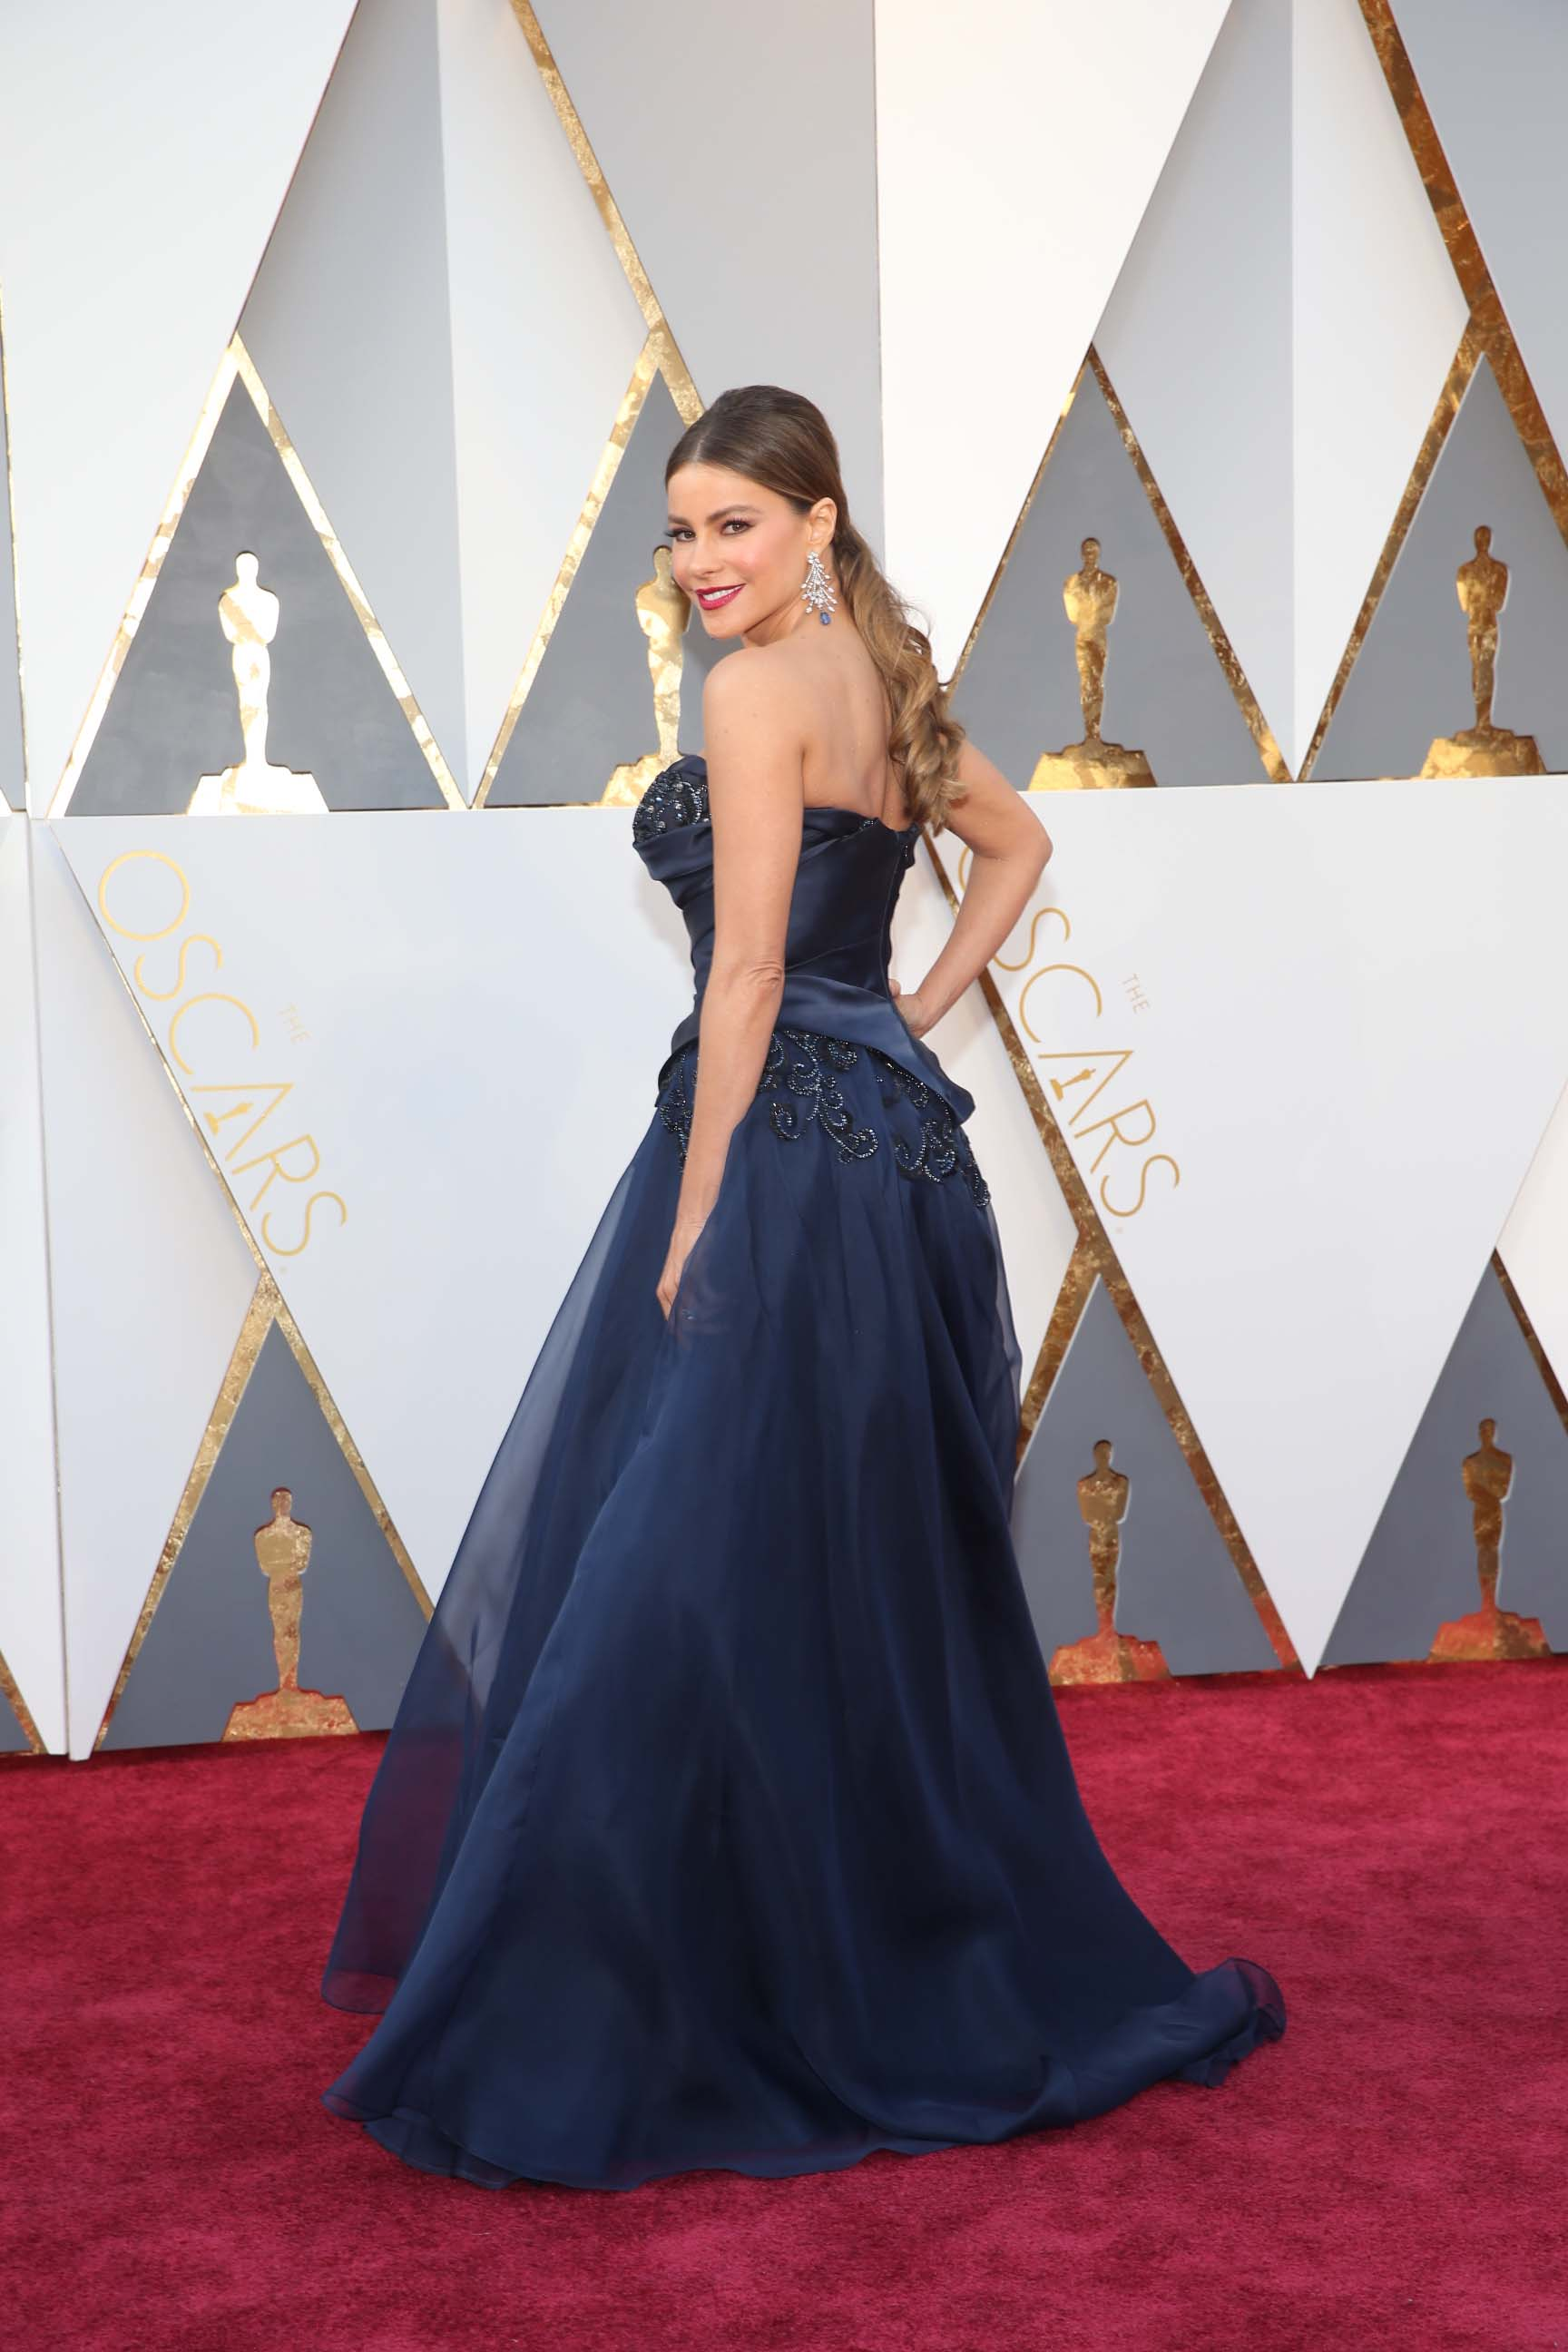 Best oscar dresses best dressed celebrities at oscars 2016 - Red carpet oscar dresses ...